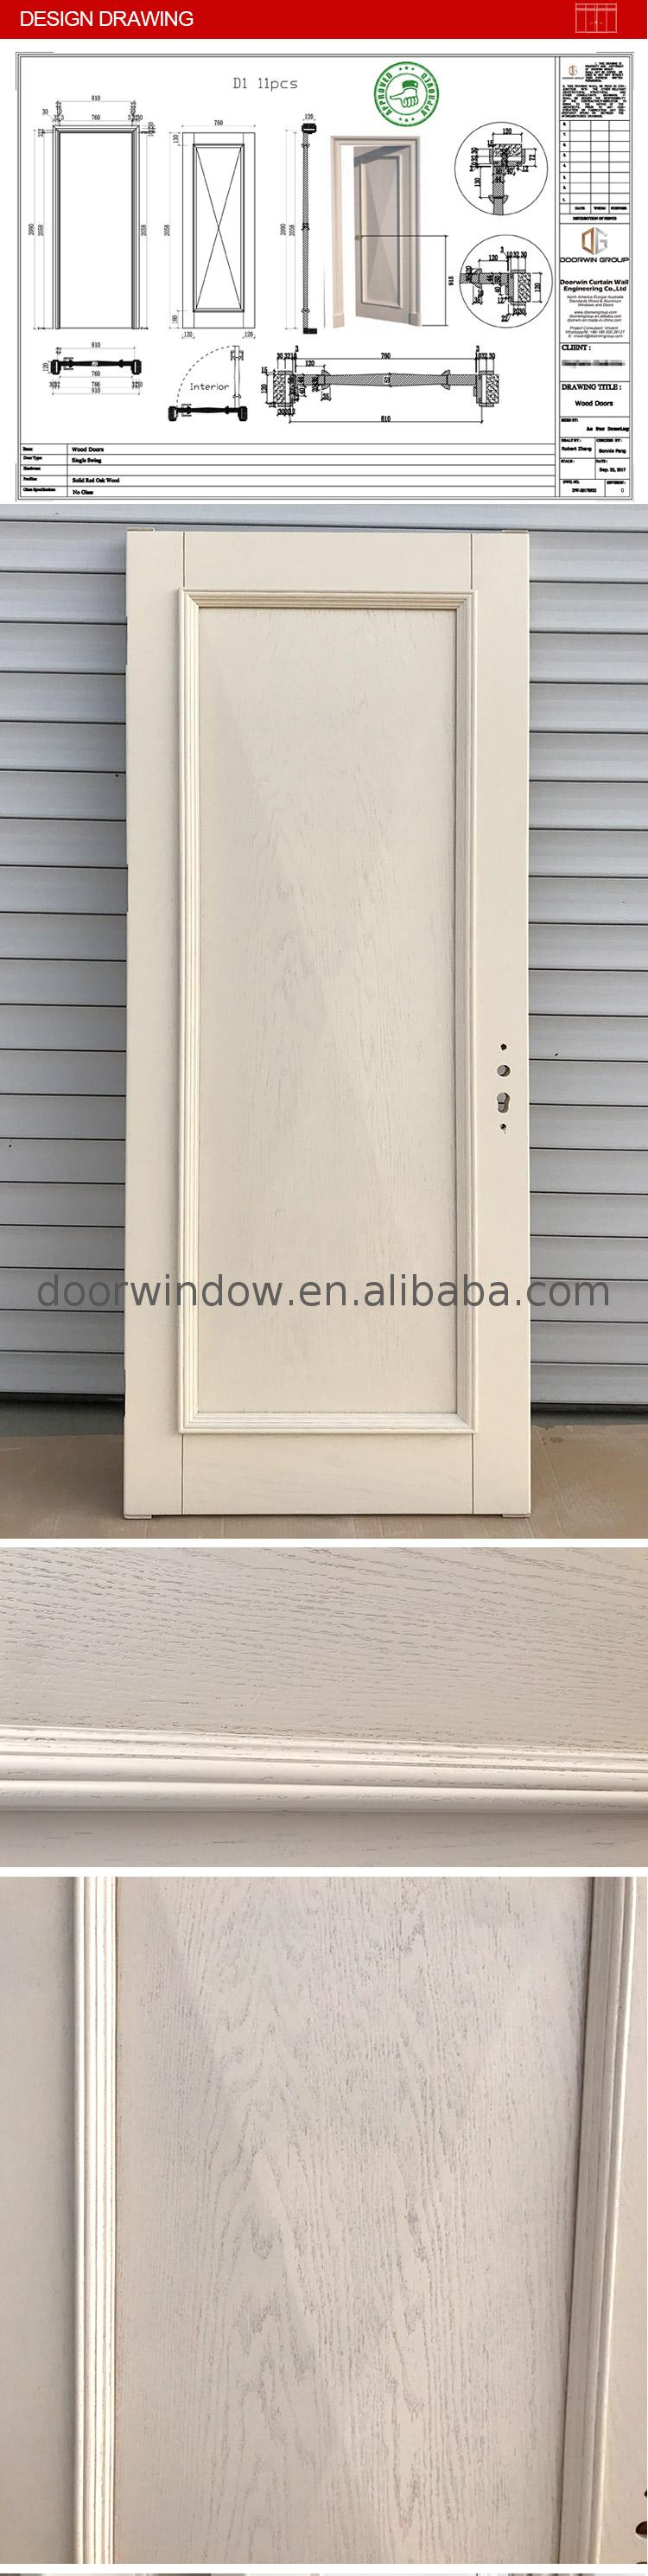 Top quality white oak doors interior design for rooms